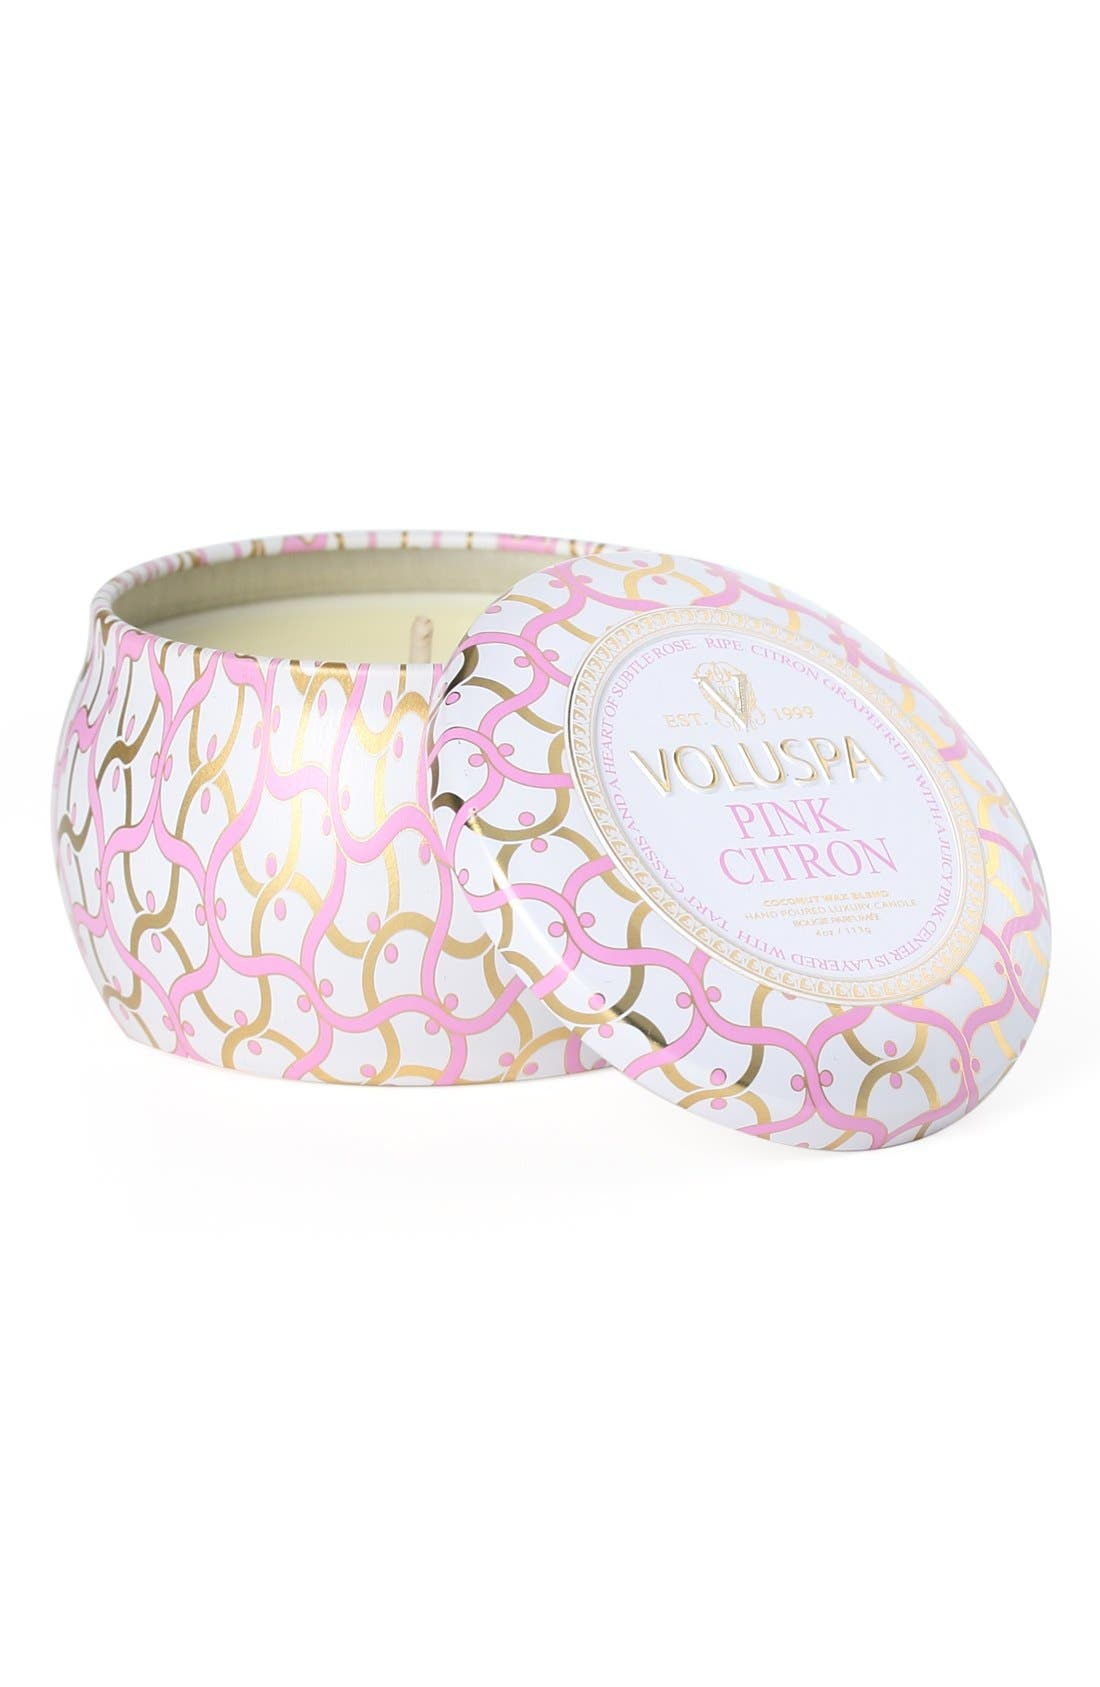 Maison Blanc Pink Citron Petite Decorative Tin Candle,                         Main,                         color, No Color